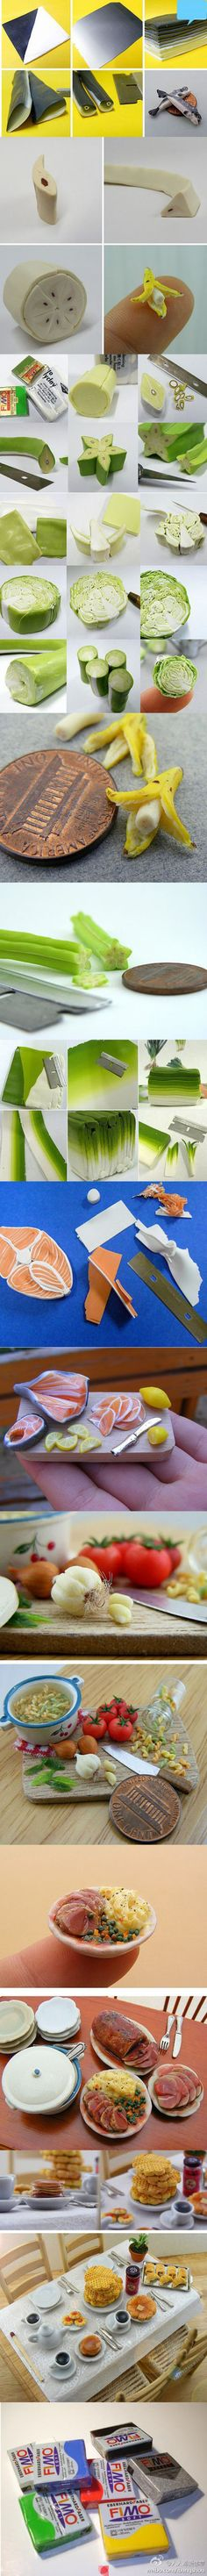 Picture Tutorial - making miniature food with fimo clay.